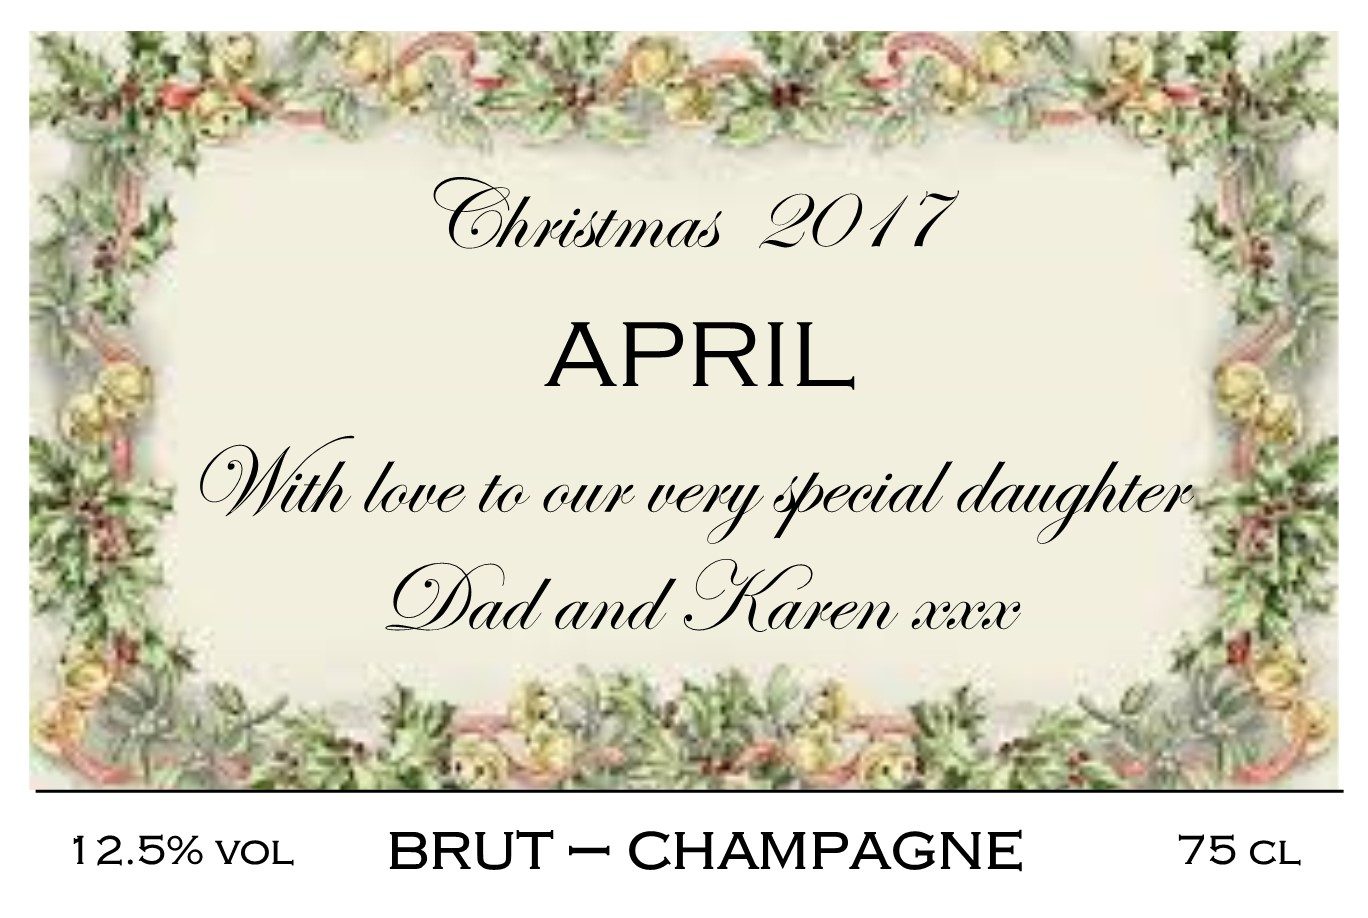 classic-personalised-christmas-champagne-label6